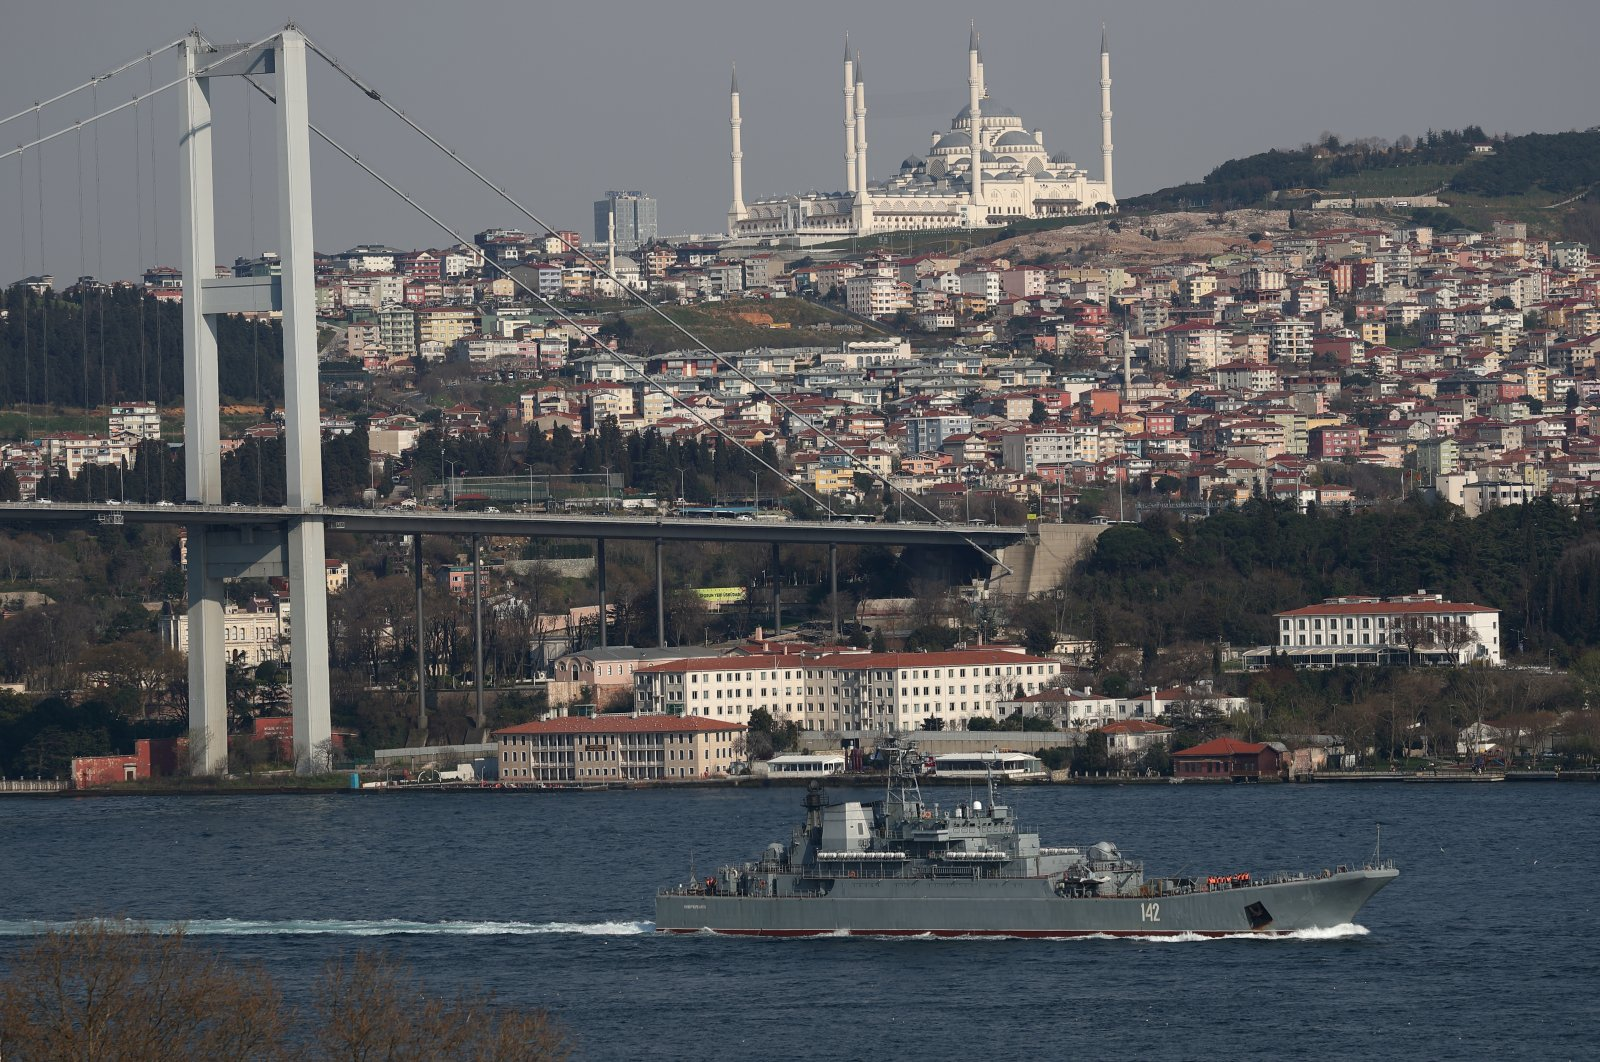 The Russian Navy's large landing ship Novocherkassk sets sail in the Bosporus on its way to the Mediterranean Sea, in Istanbul, Turkey, April 12, 2021. (Reuters Photo)